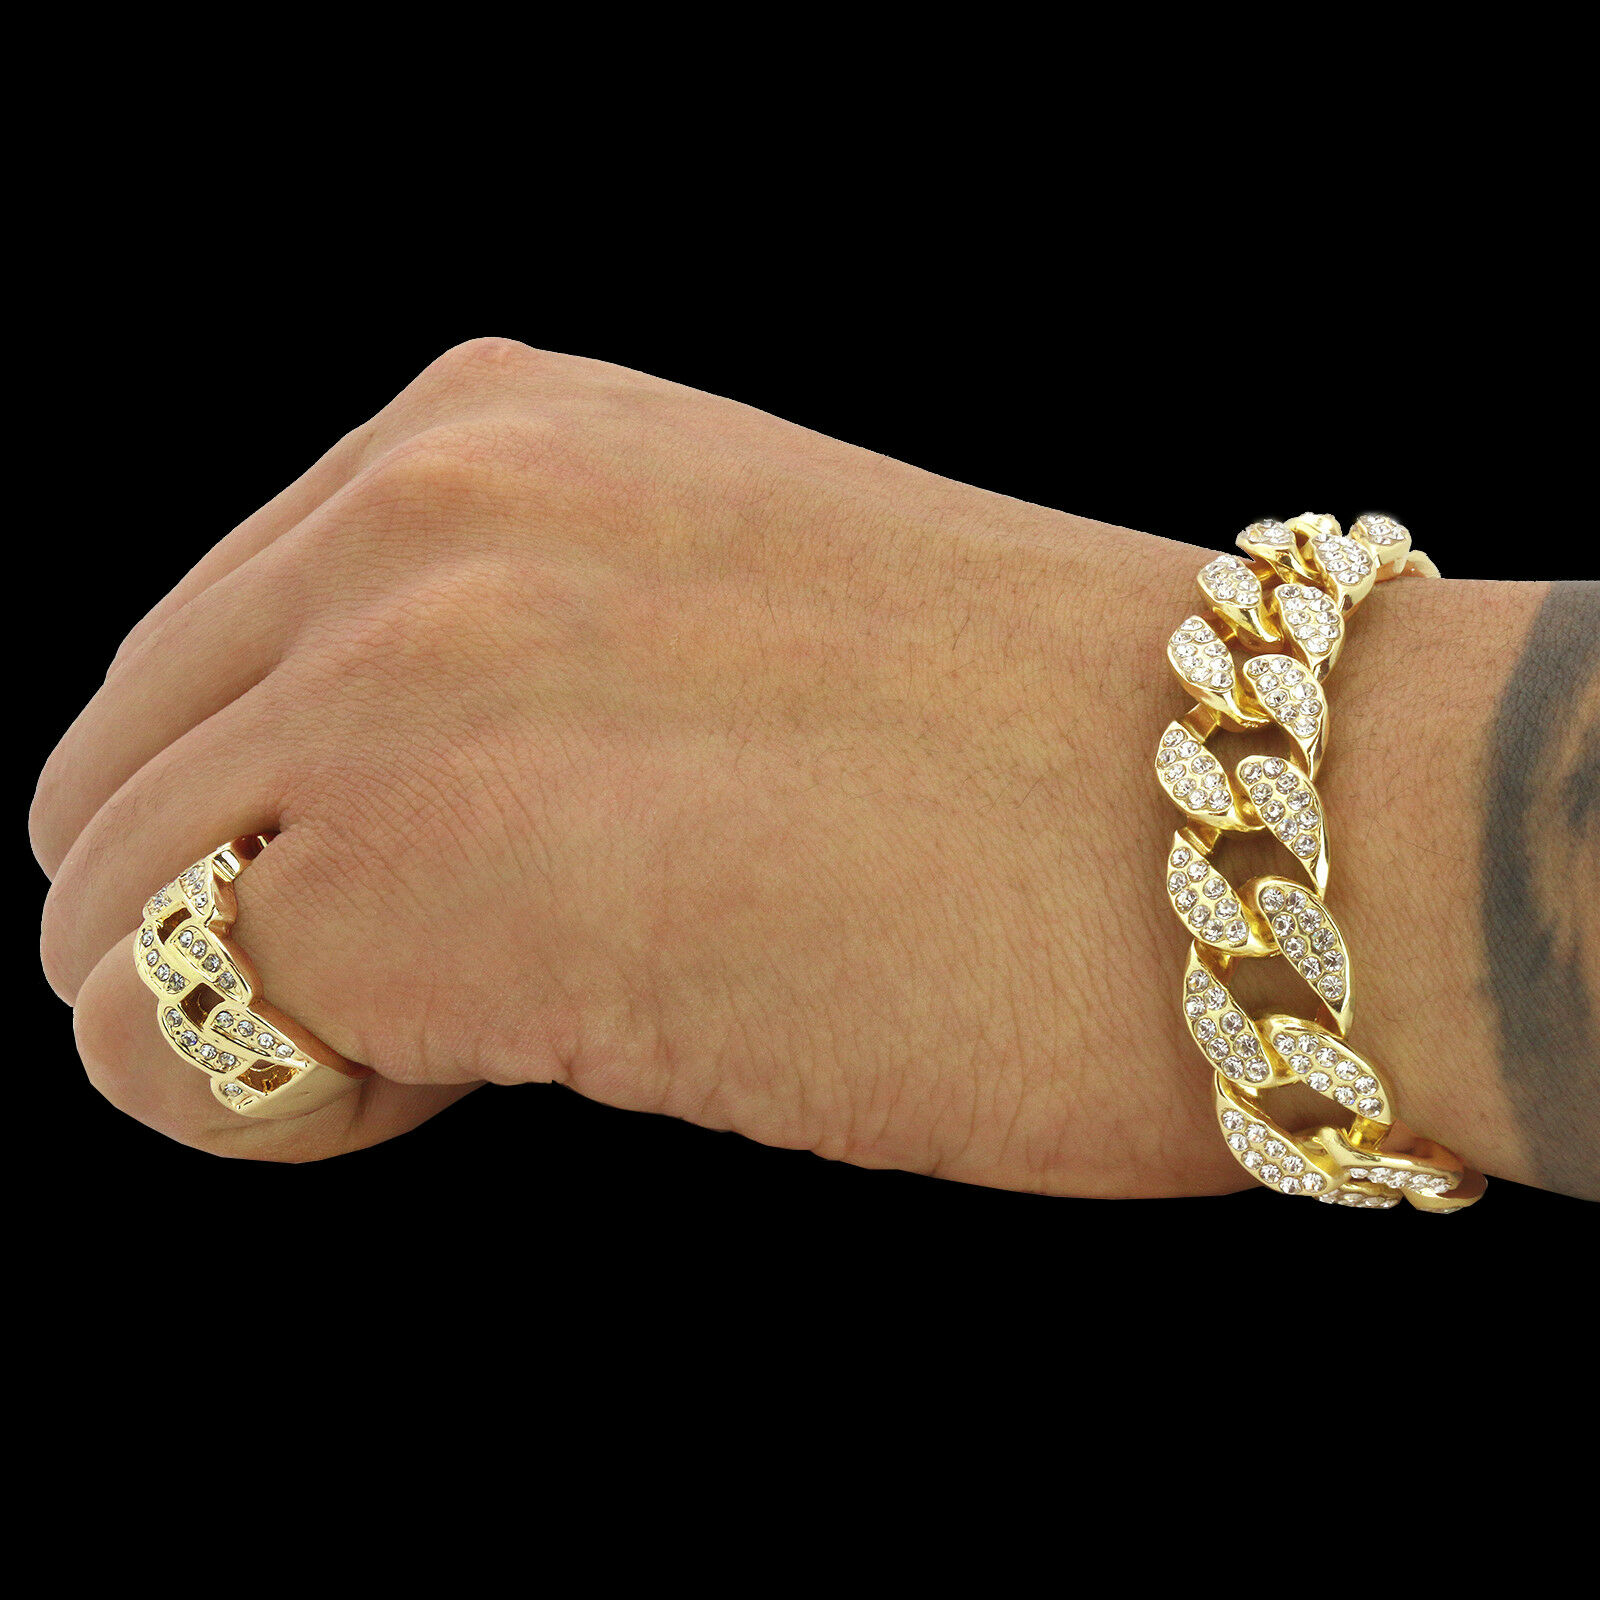 Ring - Mens 2pc Bracelet Ring Set Miami Cuban Link Iced Out 14k Gold Plated Hip Hop